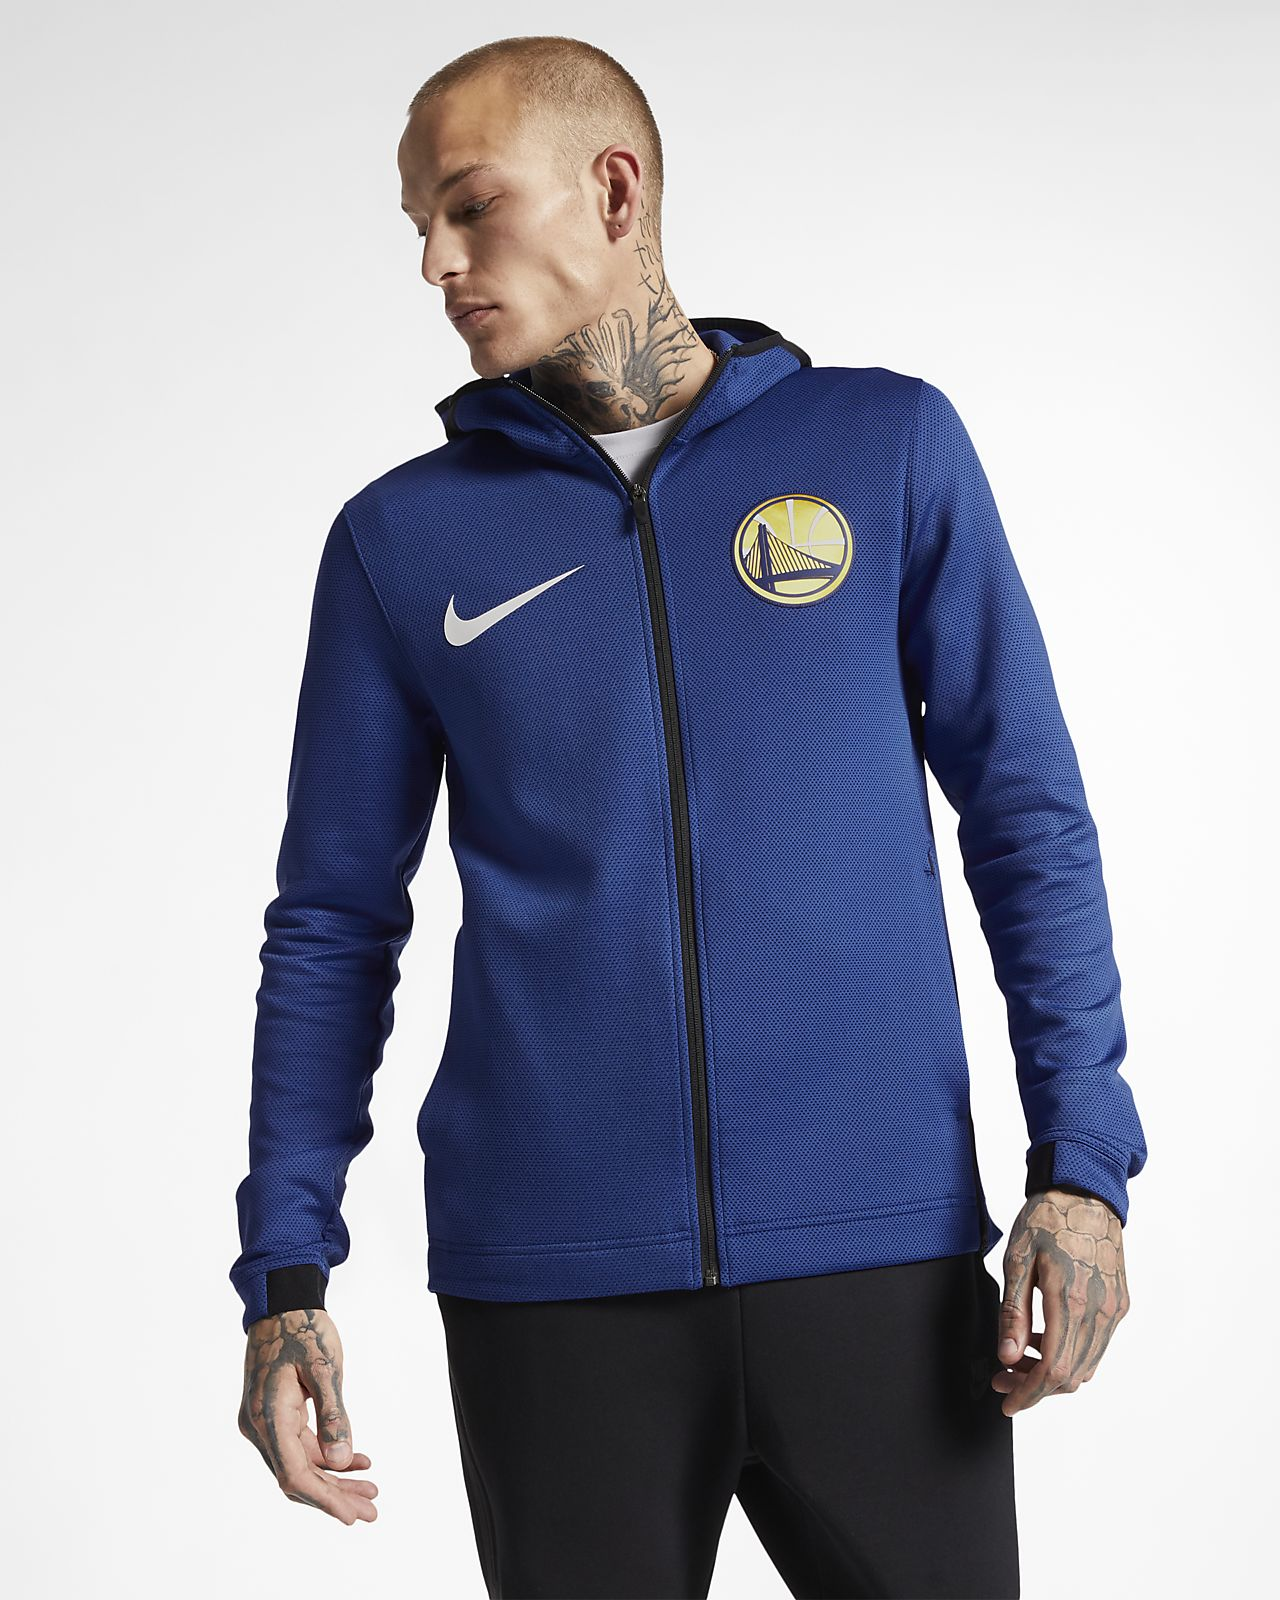 Golden State Warriors Nike Therma Flex Showtime Men's NBA Hoodie